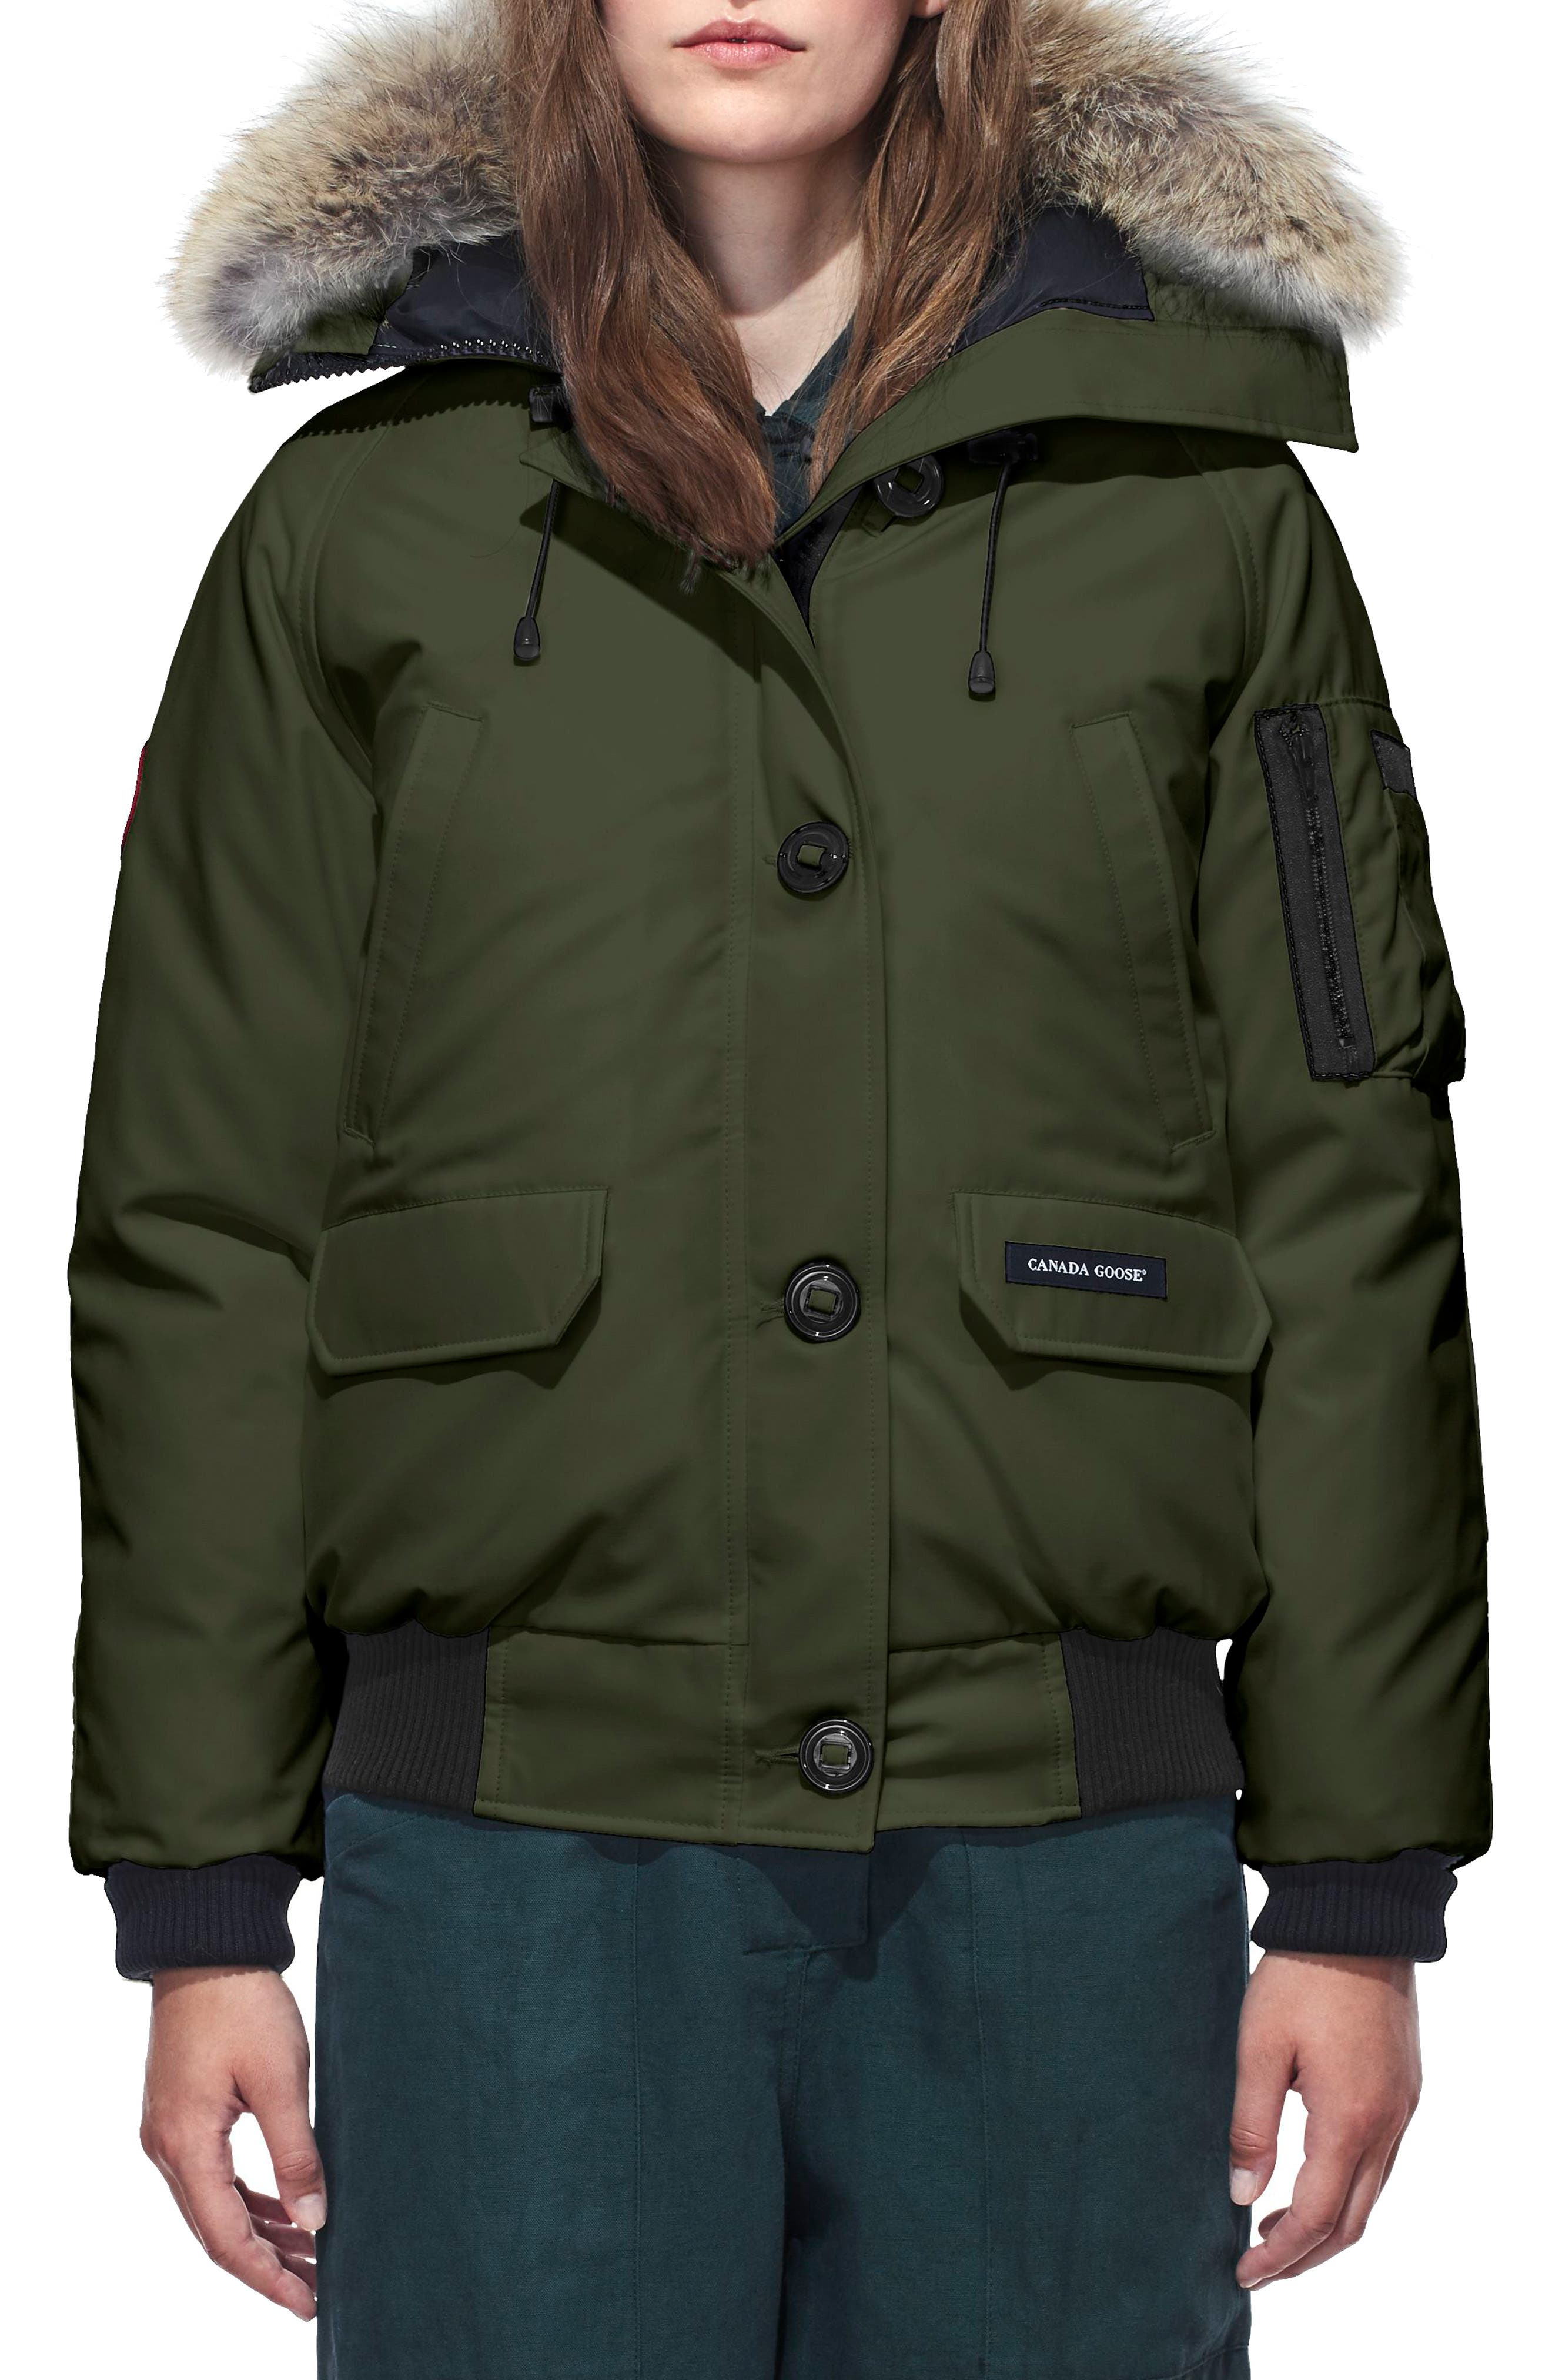 Chilliwack Hooded Down Bomber Jacket with Genuine Coyote Fur Trim,                             Main thumbnail 1, color,                             MILITARY GREEN